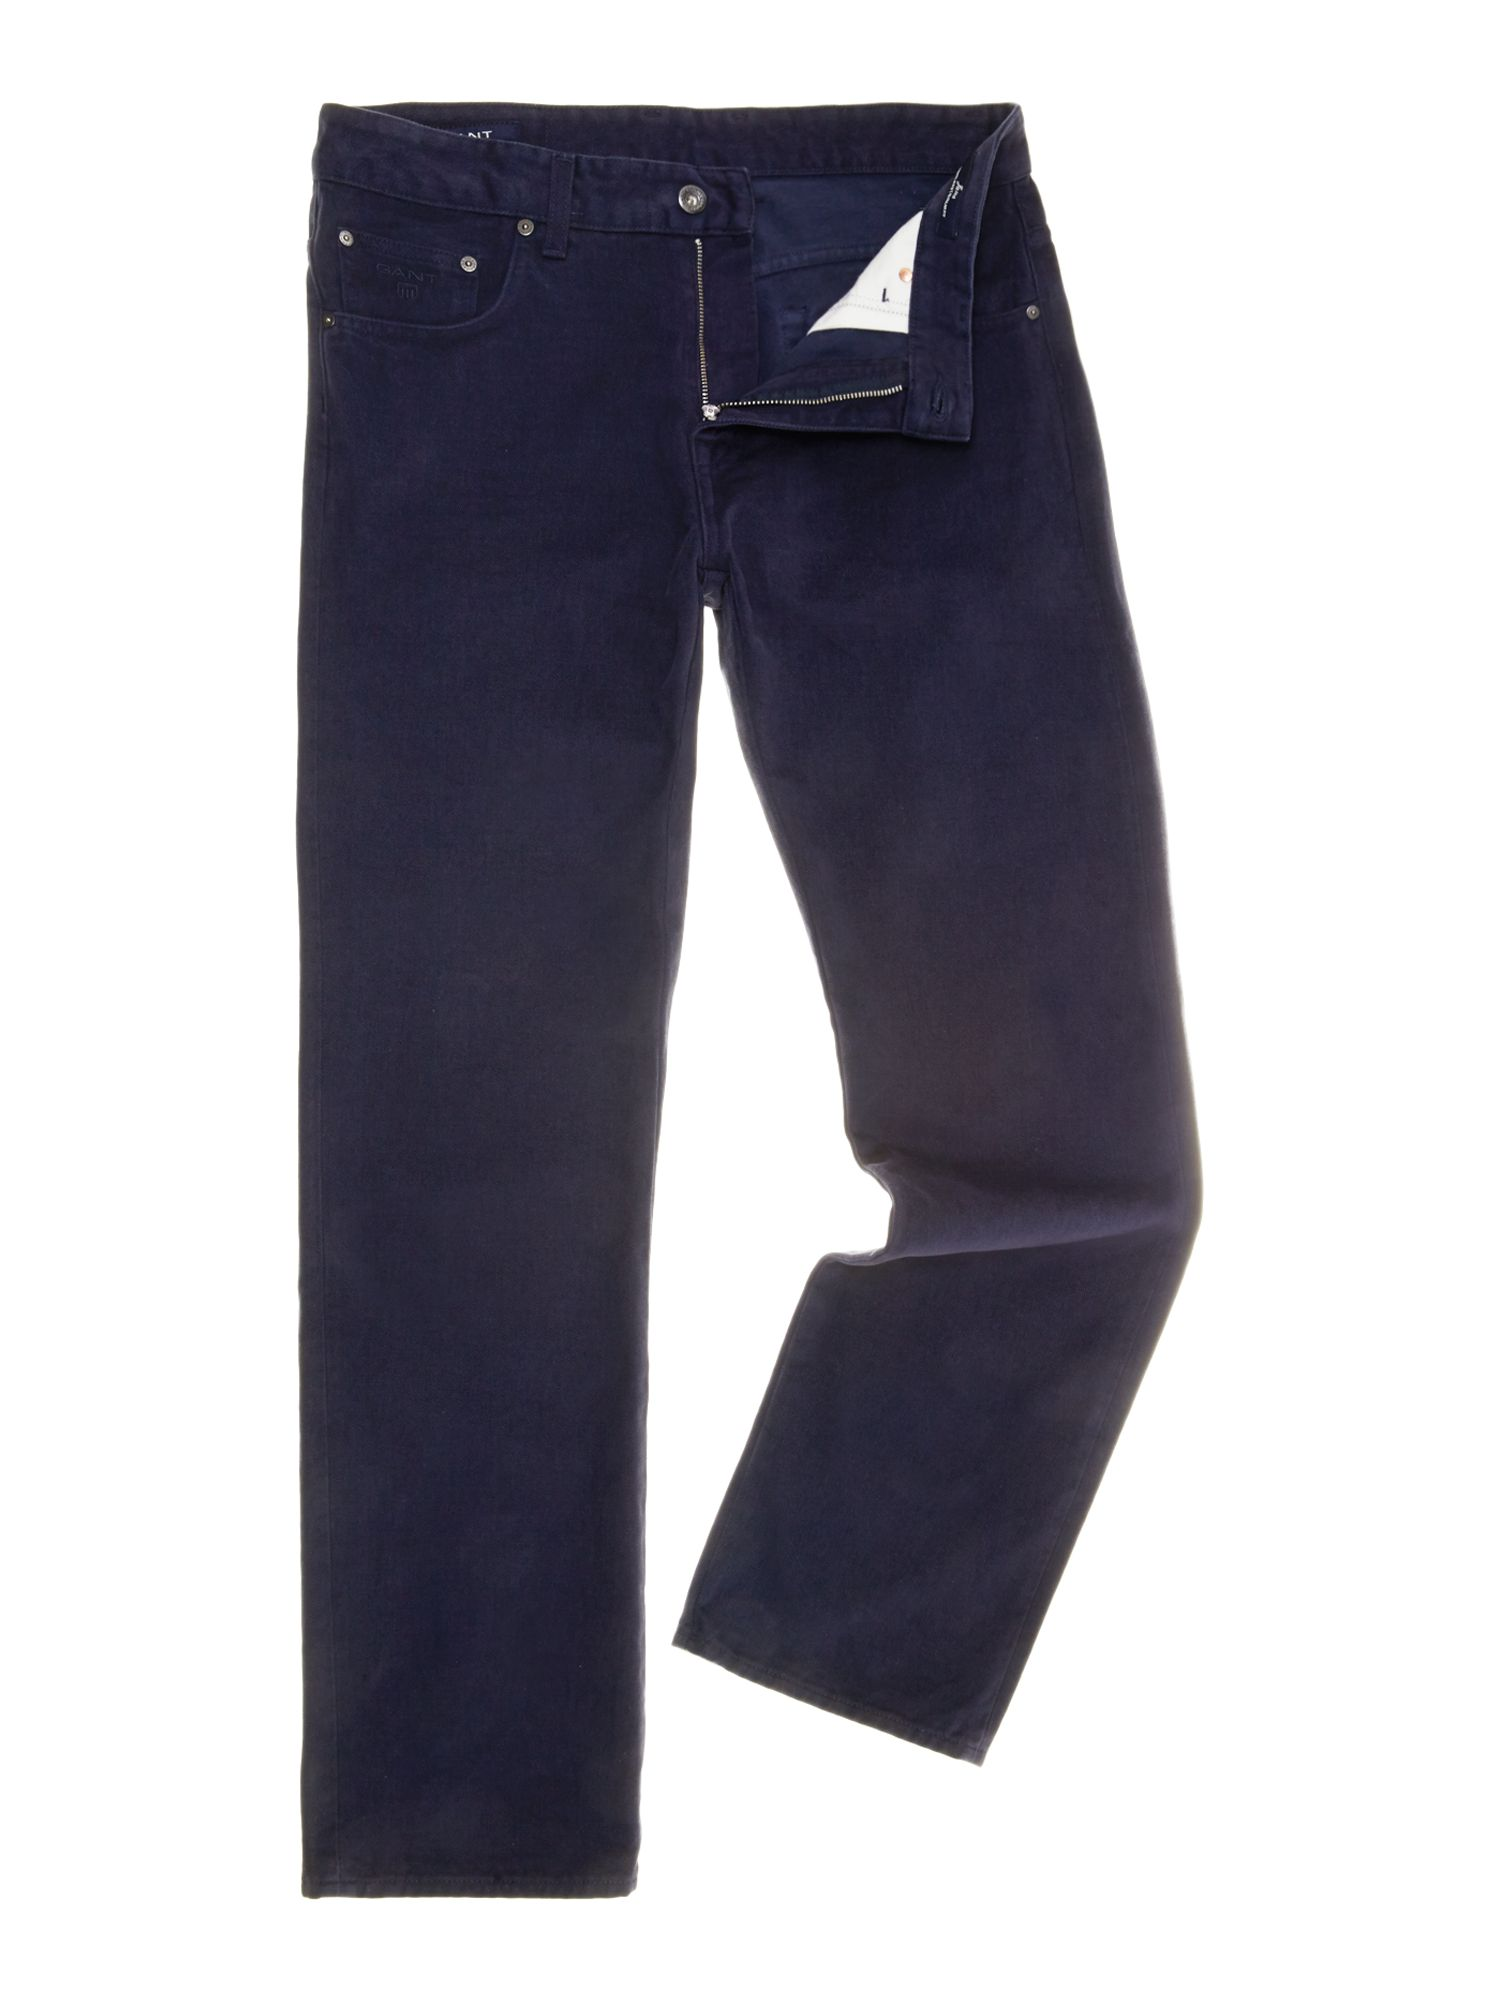 Regular fit jason soft twill jeans